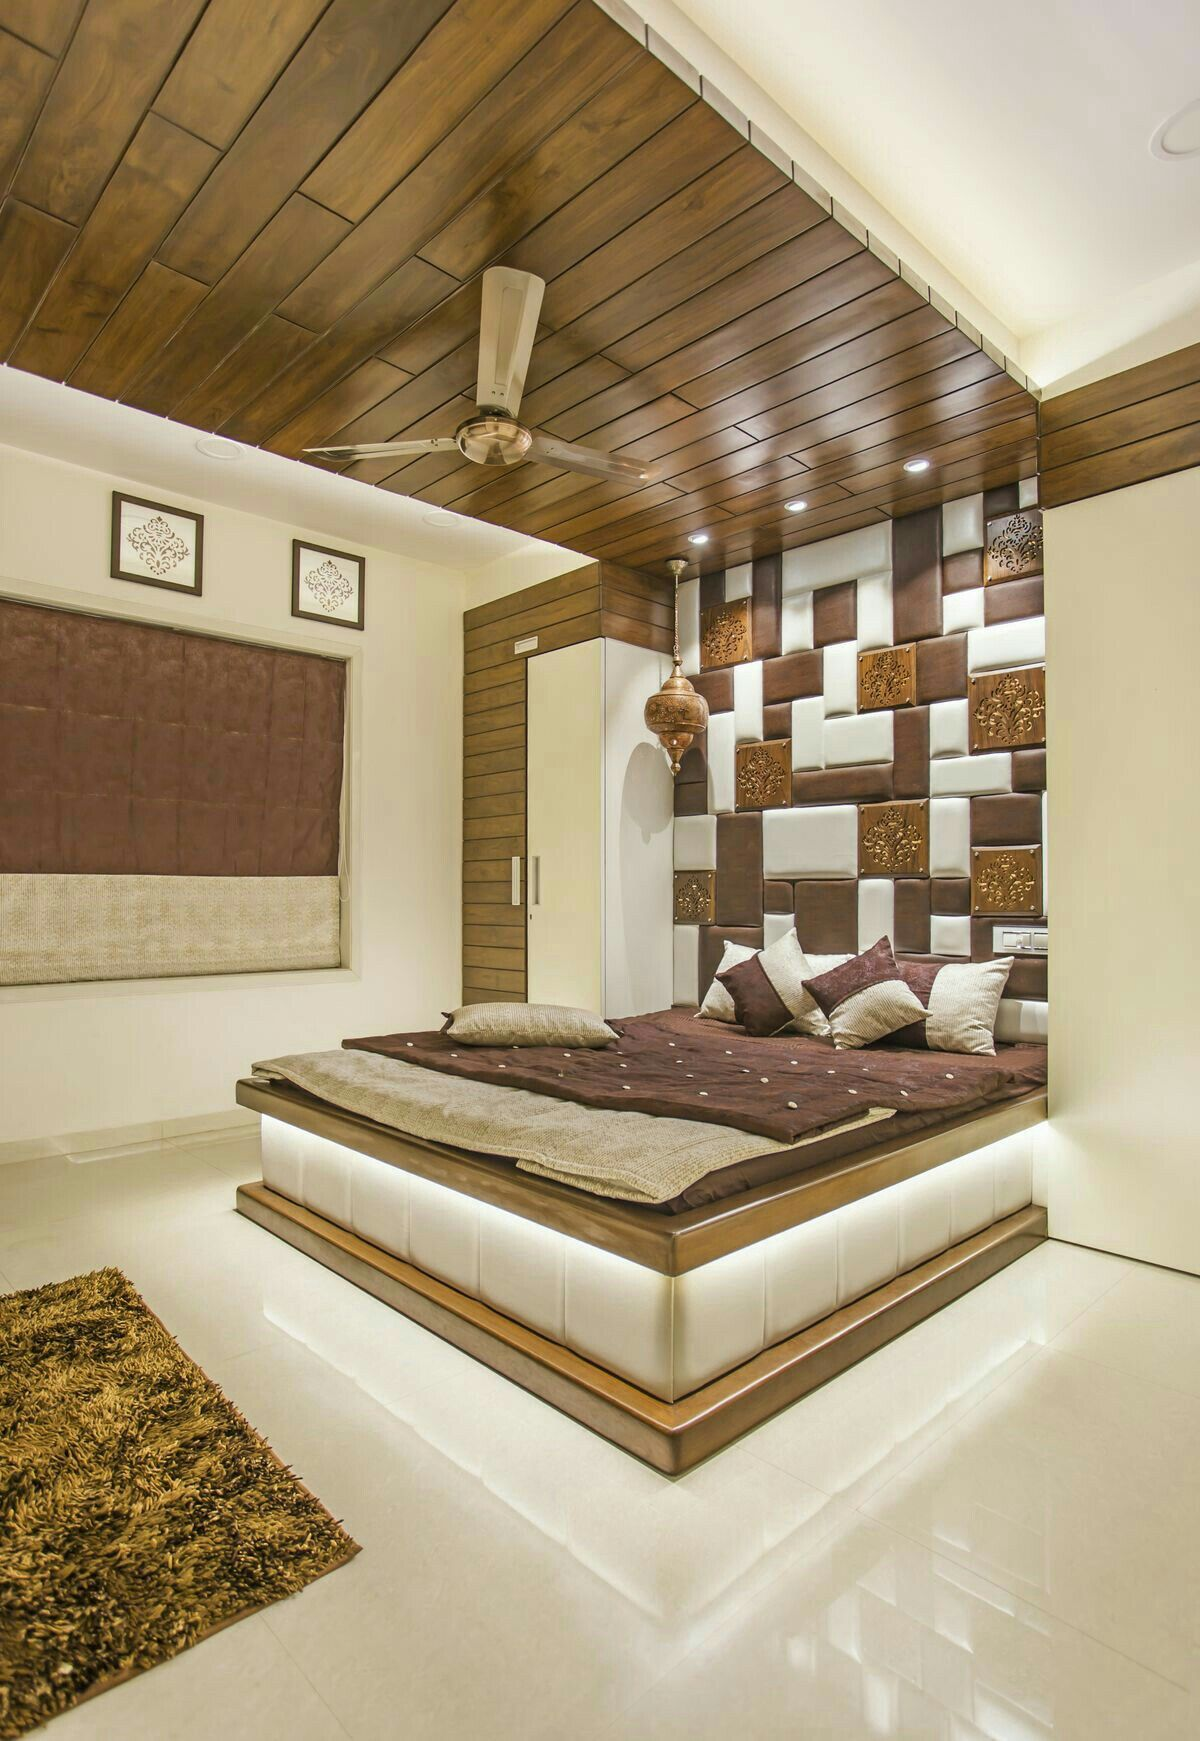 Pin By Oshin Sikka On Bed Net In 2019 Bedroom Ceiling Design